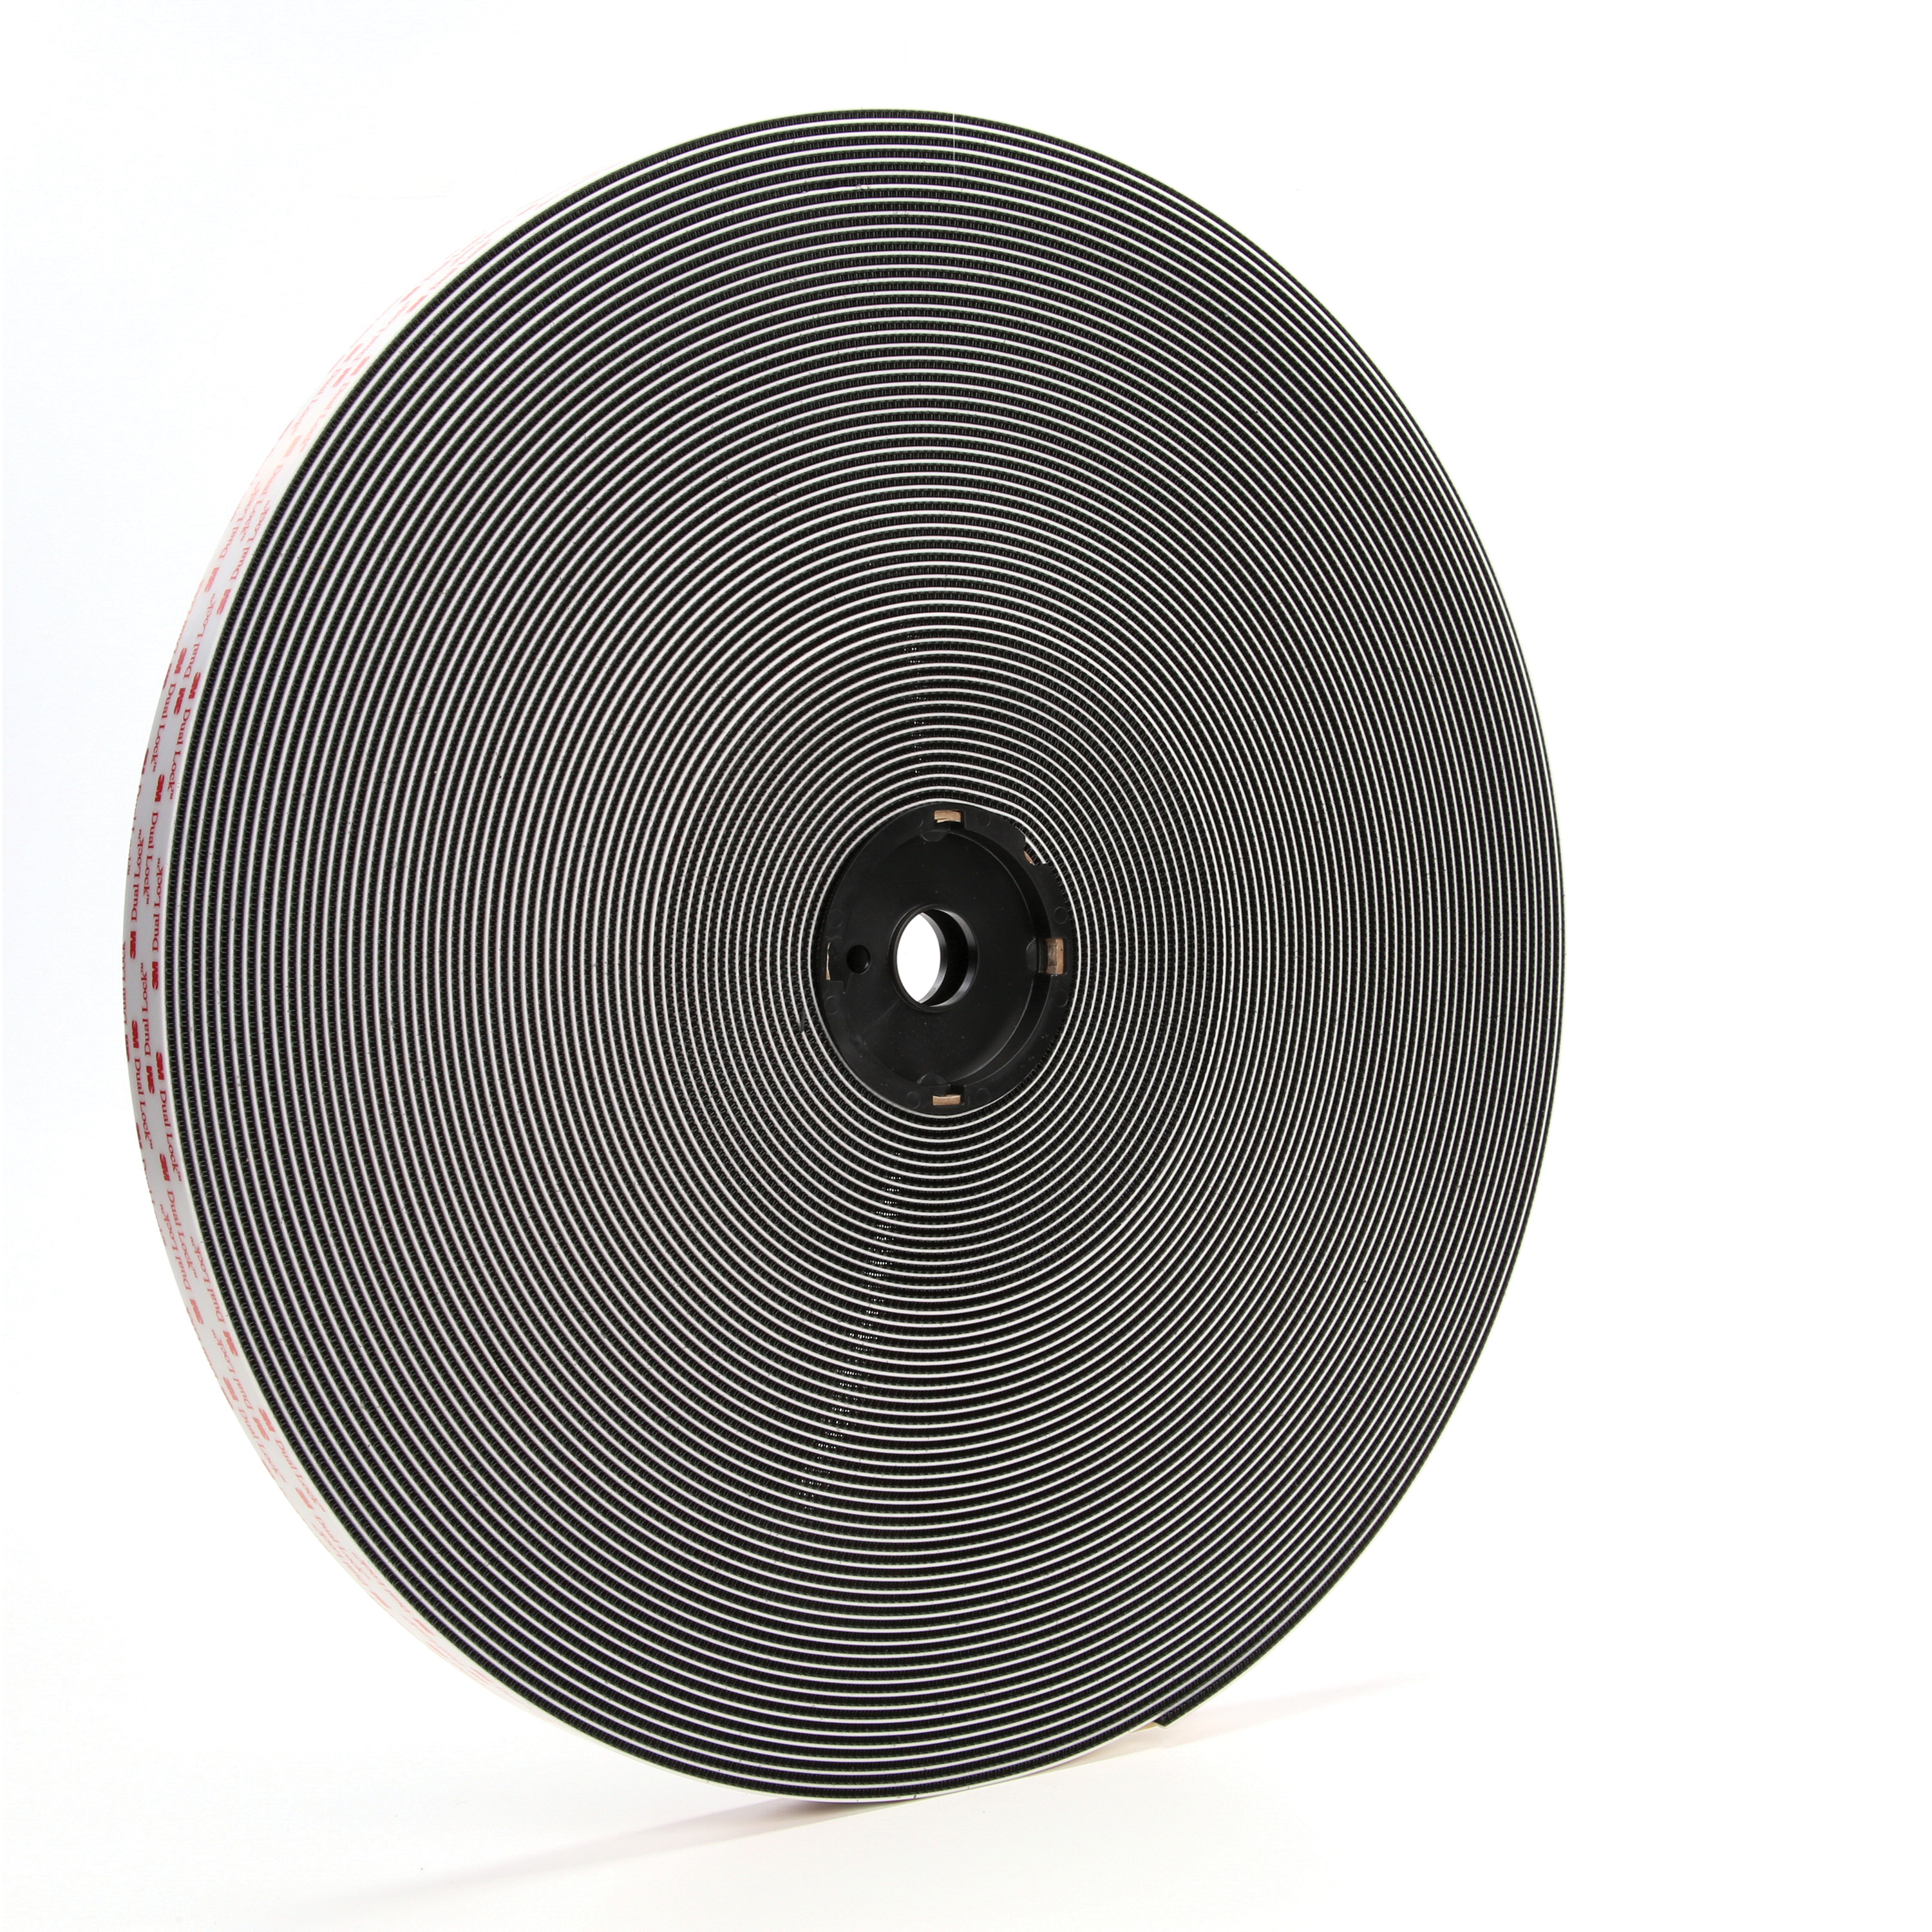 3M™ Dual Lock™ 021200-86278 General Purpose Mushroom Shaped Reclosable Hook and Loop Fastener Tape, 50 yd L x 1 in W, 0.23 in THK Engaged, Acrylic Adhesive, Polypropylene Backing, Black